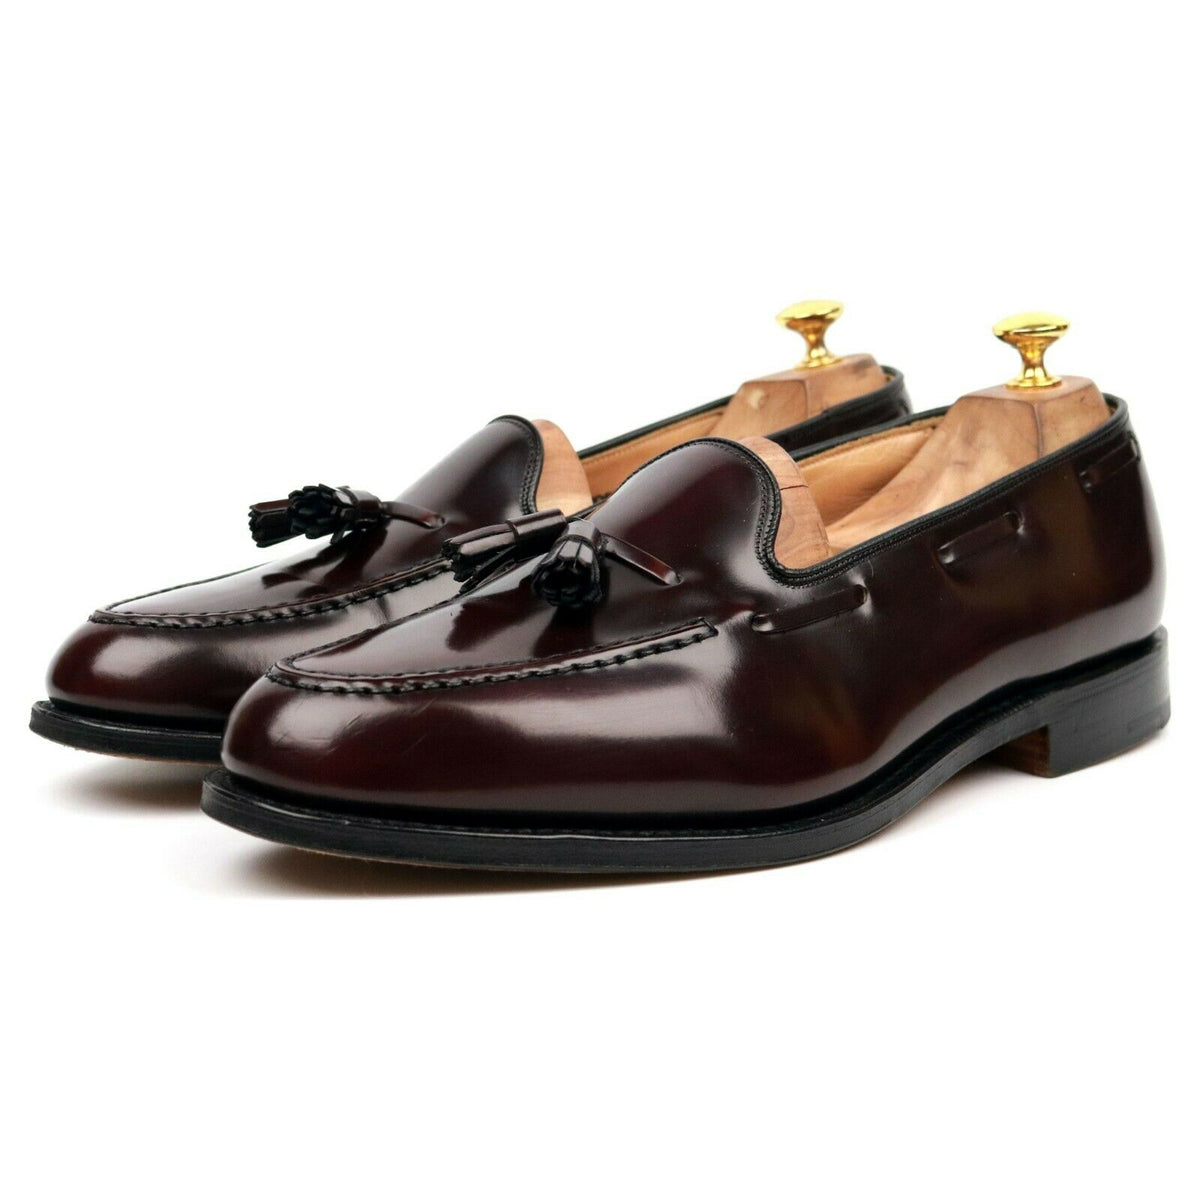 Church's 'Keats II' Burgundy Leather Tassel Loafers UK 11 F